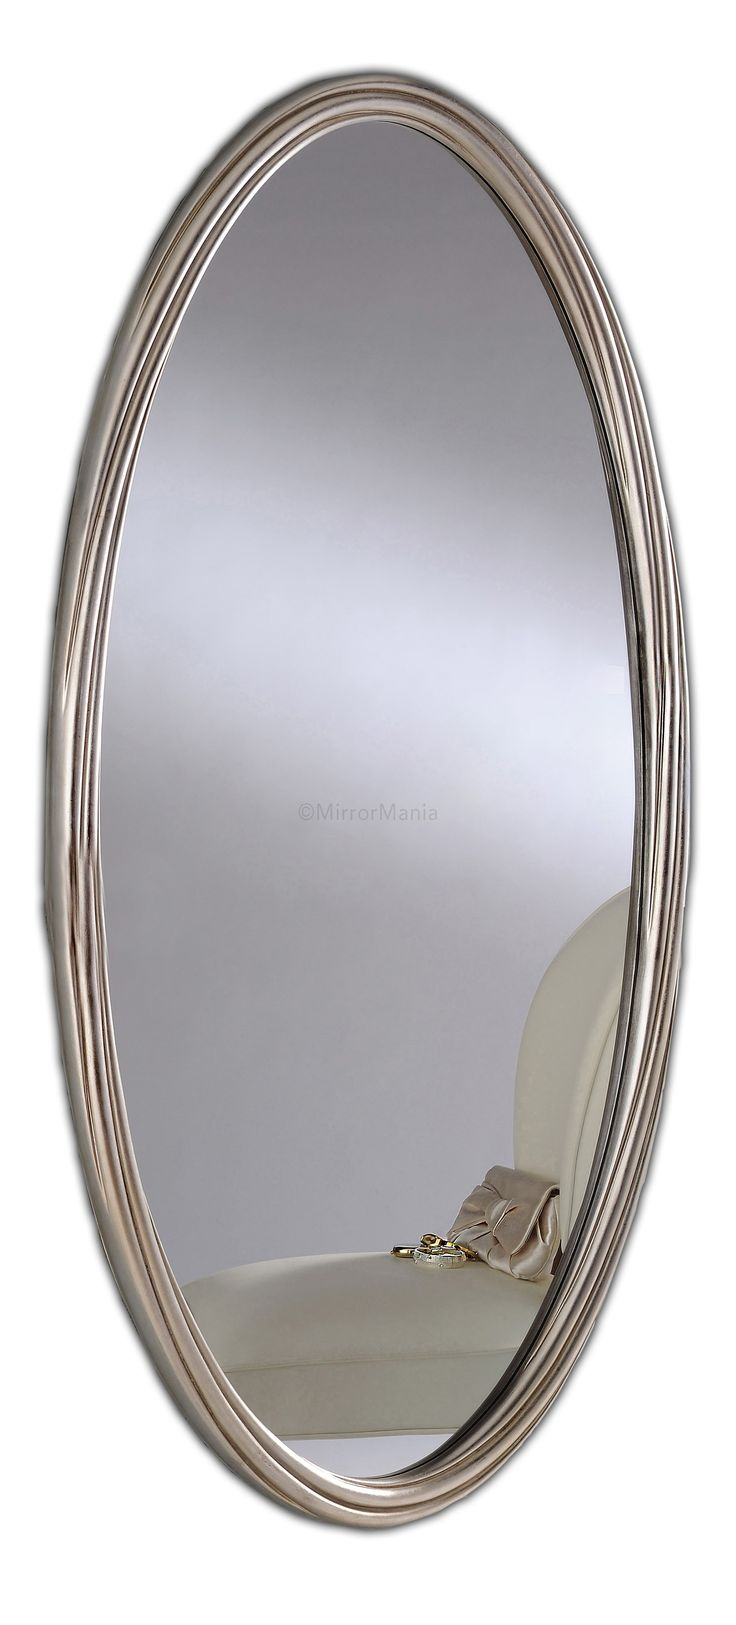 Ramona Swirled Wooden Framed Oval Mirror - All Mirrors - Mirrors